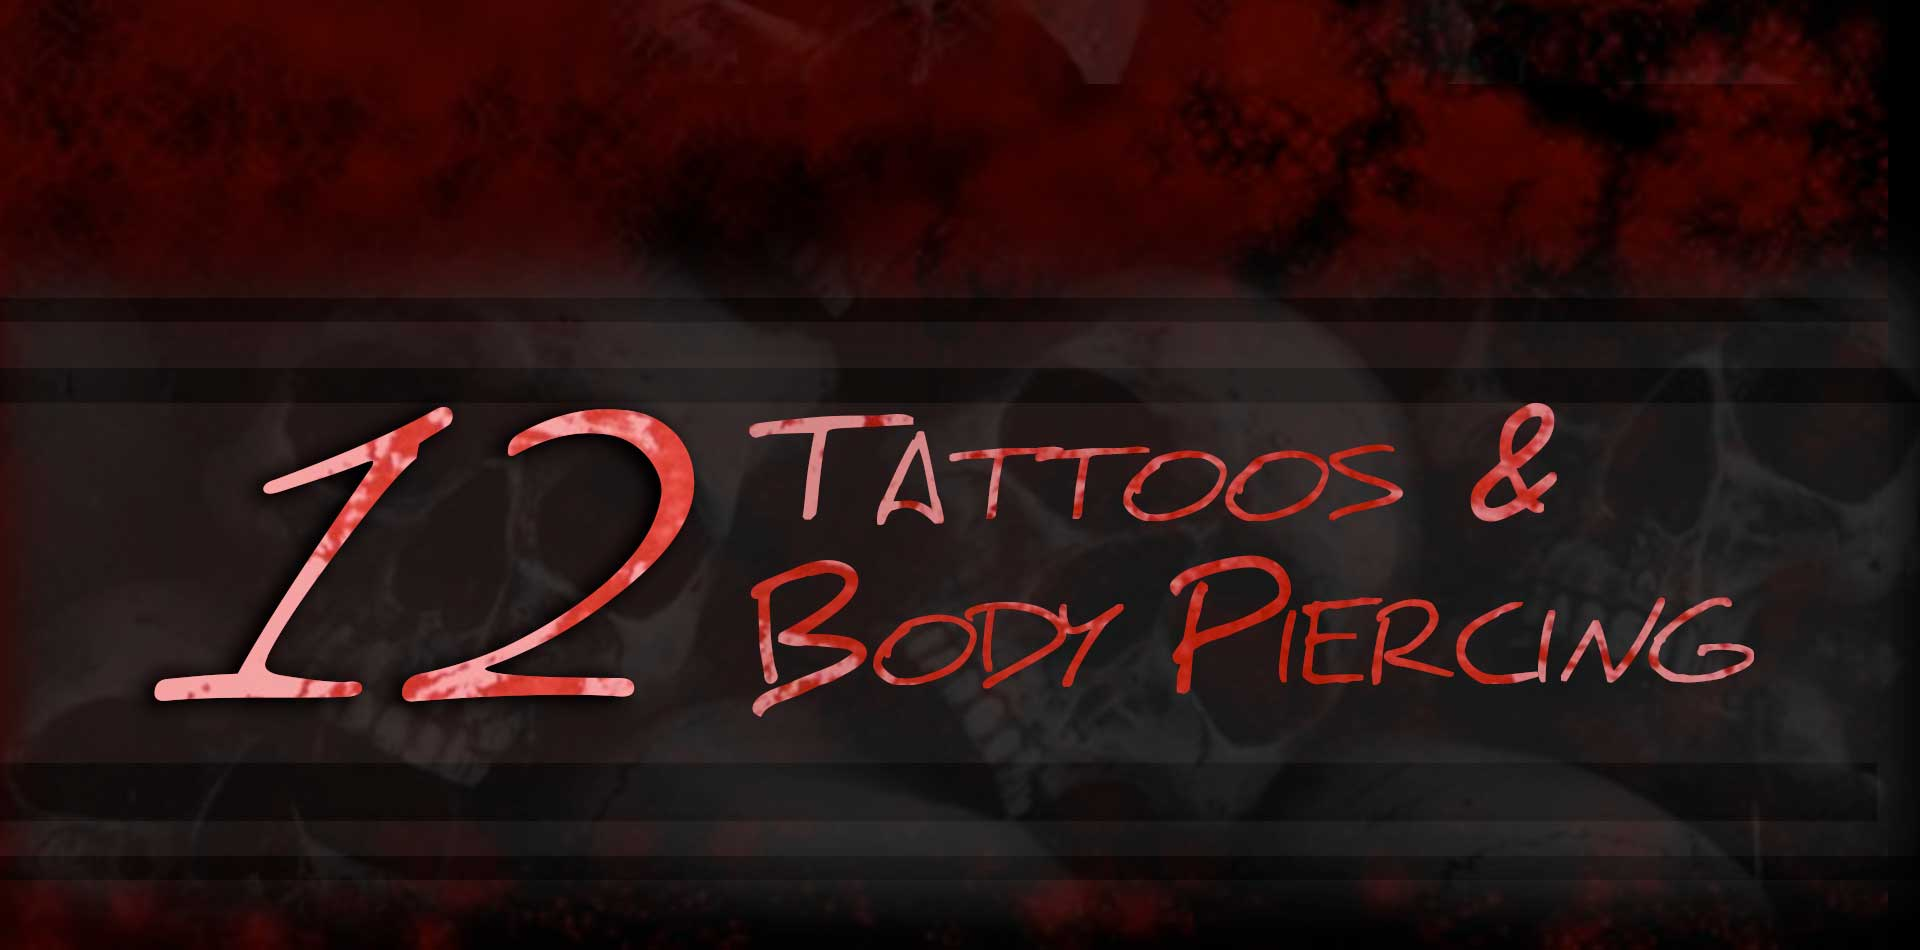 12 Tattoos Body Piercing Tattoo Shop Groton Ct Ideas And Designs Original 1024 x 768